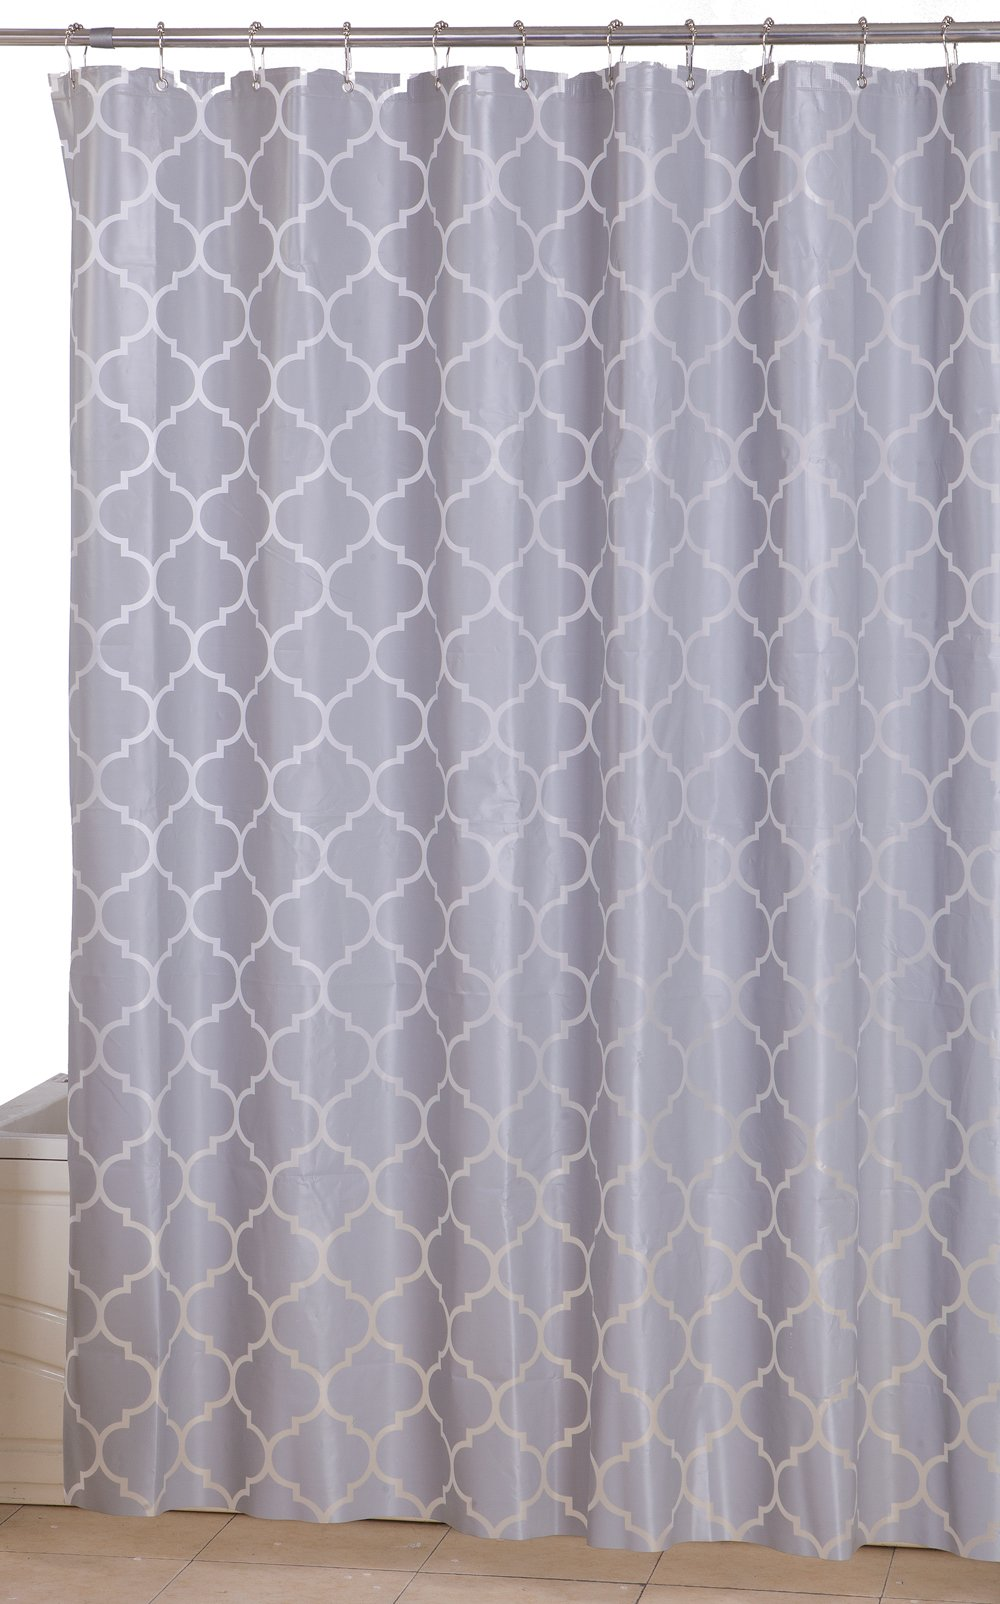 Get Quotations Utopia Home Opulent Printed Shower CurtainsGrey Pattern72 X 72 Inches